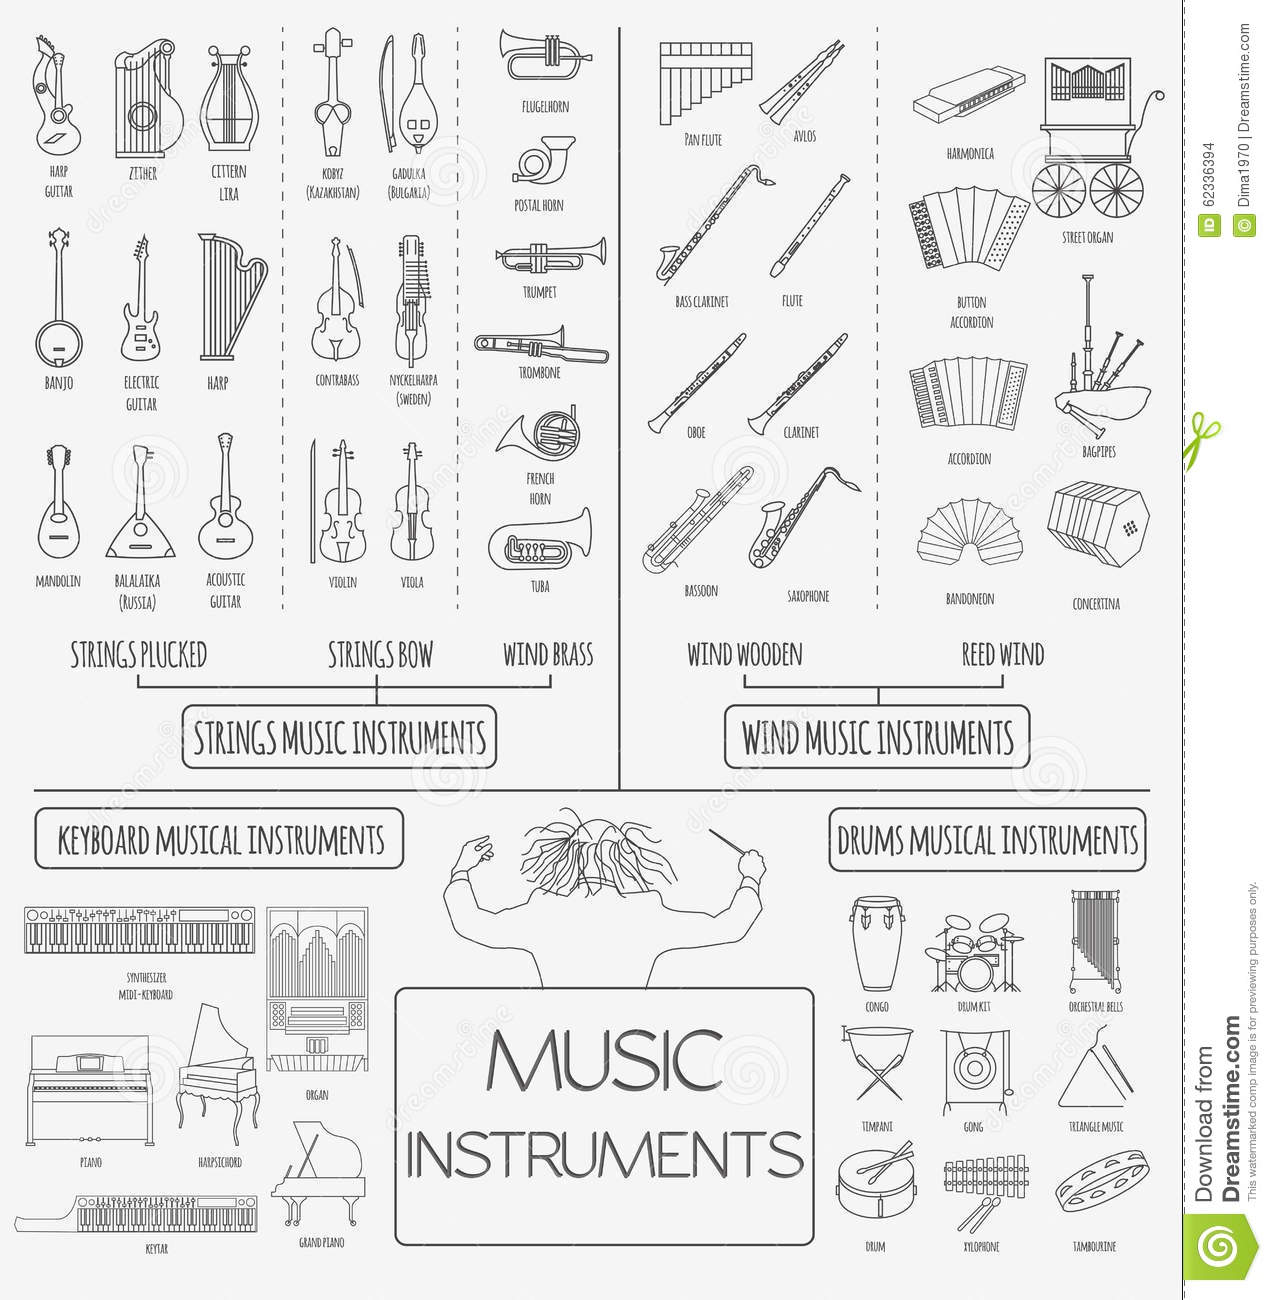 Worksheets Types Of Musical Instrument musical instruments graphic template all types of instr instr